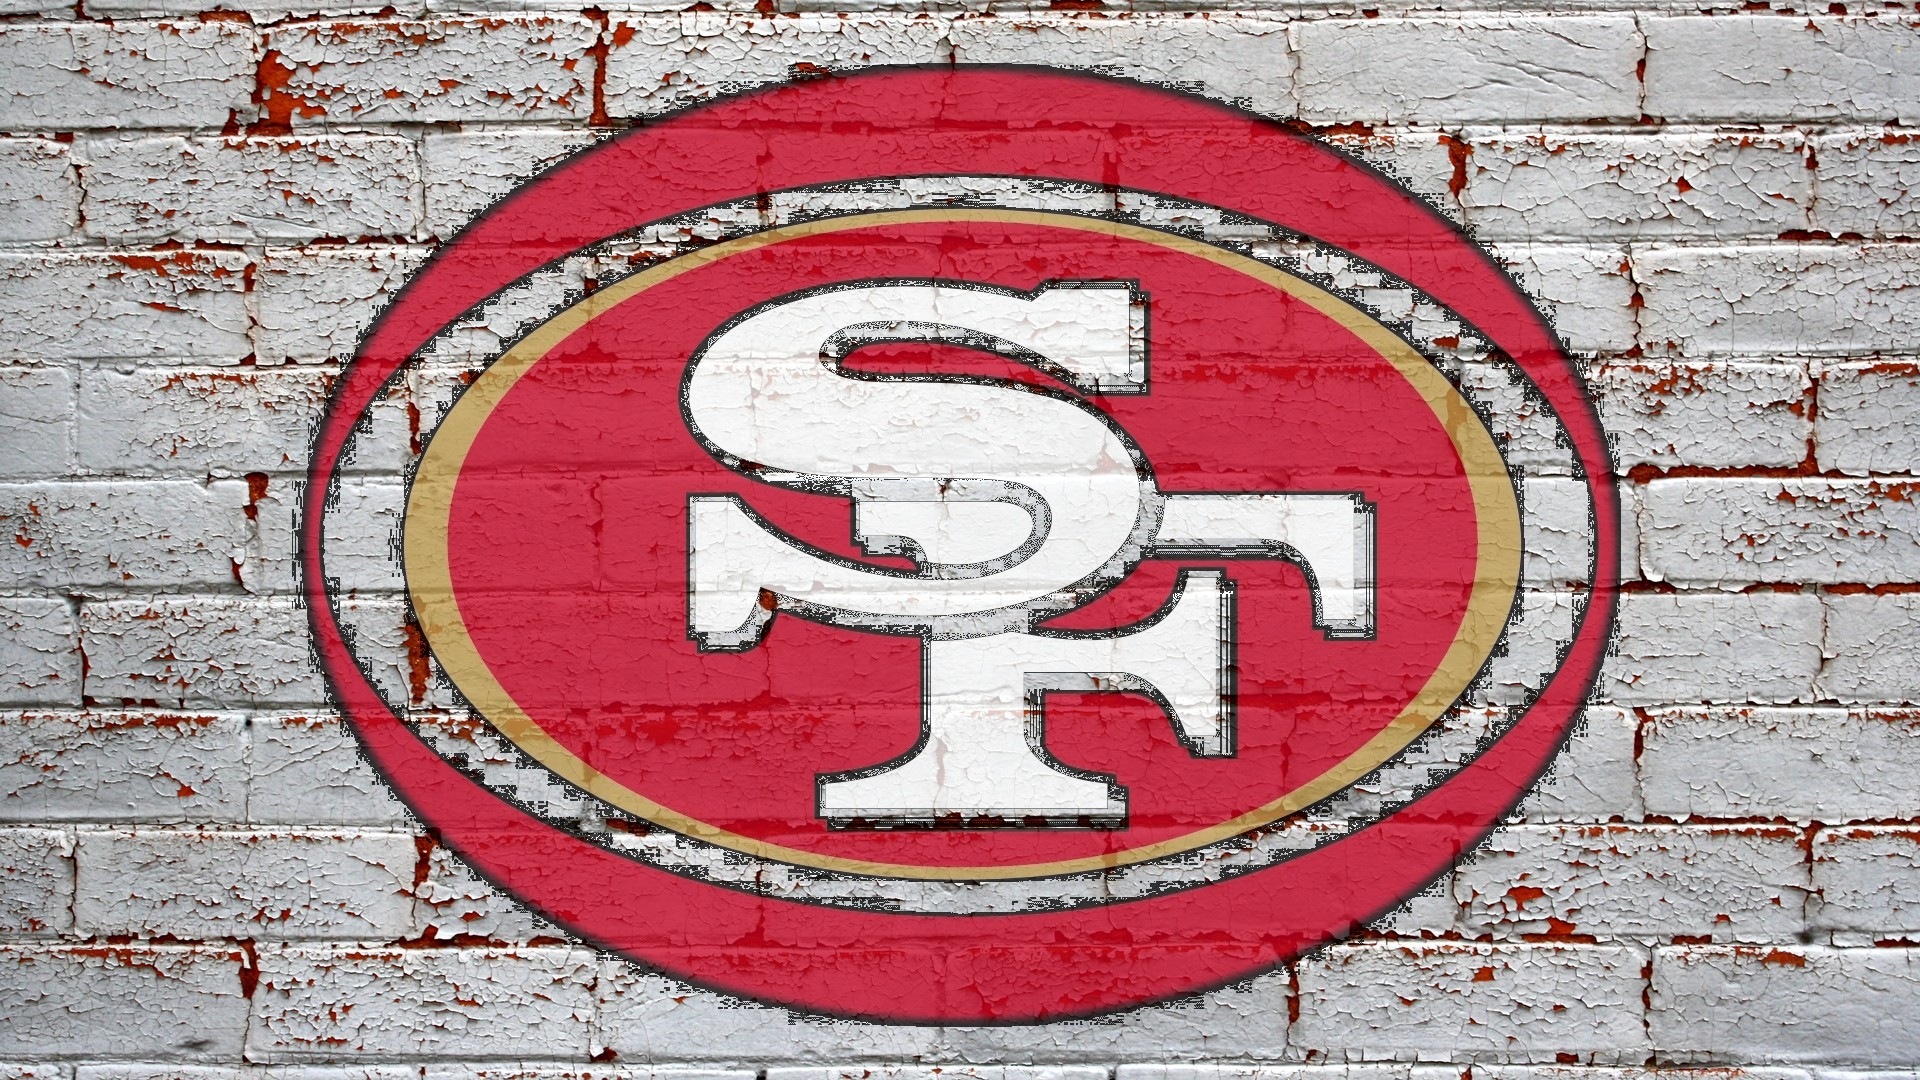 More San Francisco 49ers wallpapers San Francisco 49ers wallpapers 1920x1080